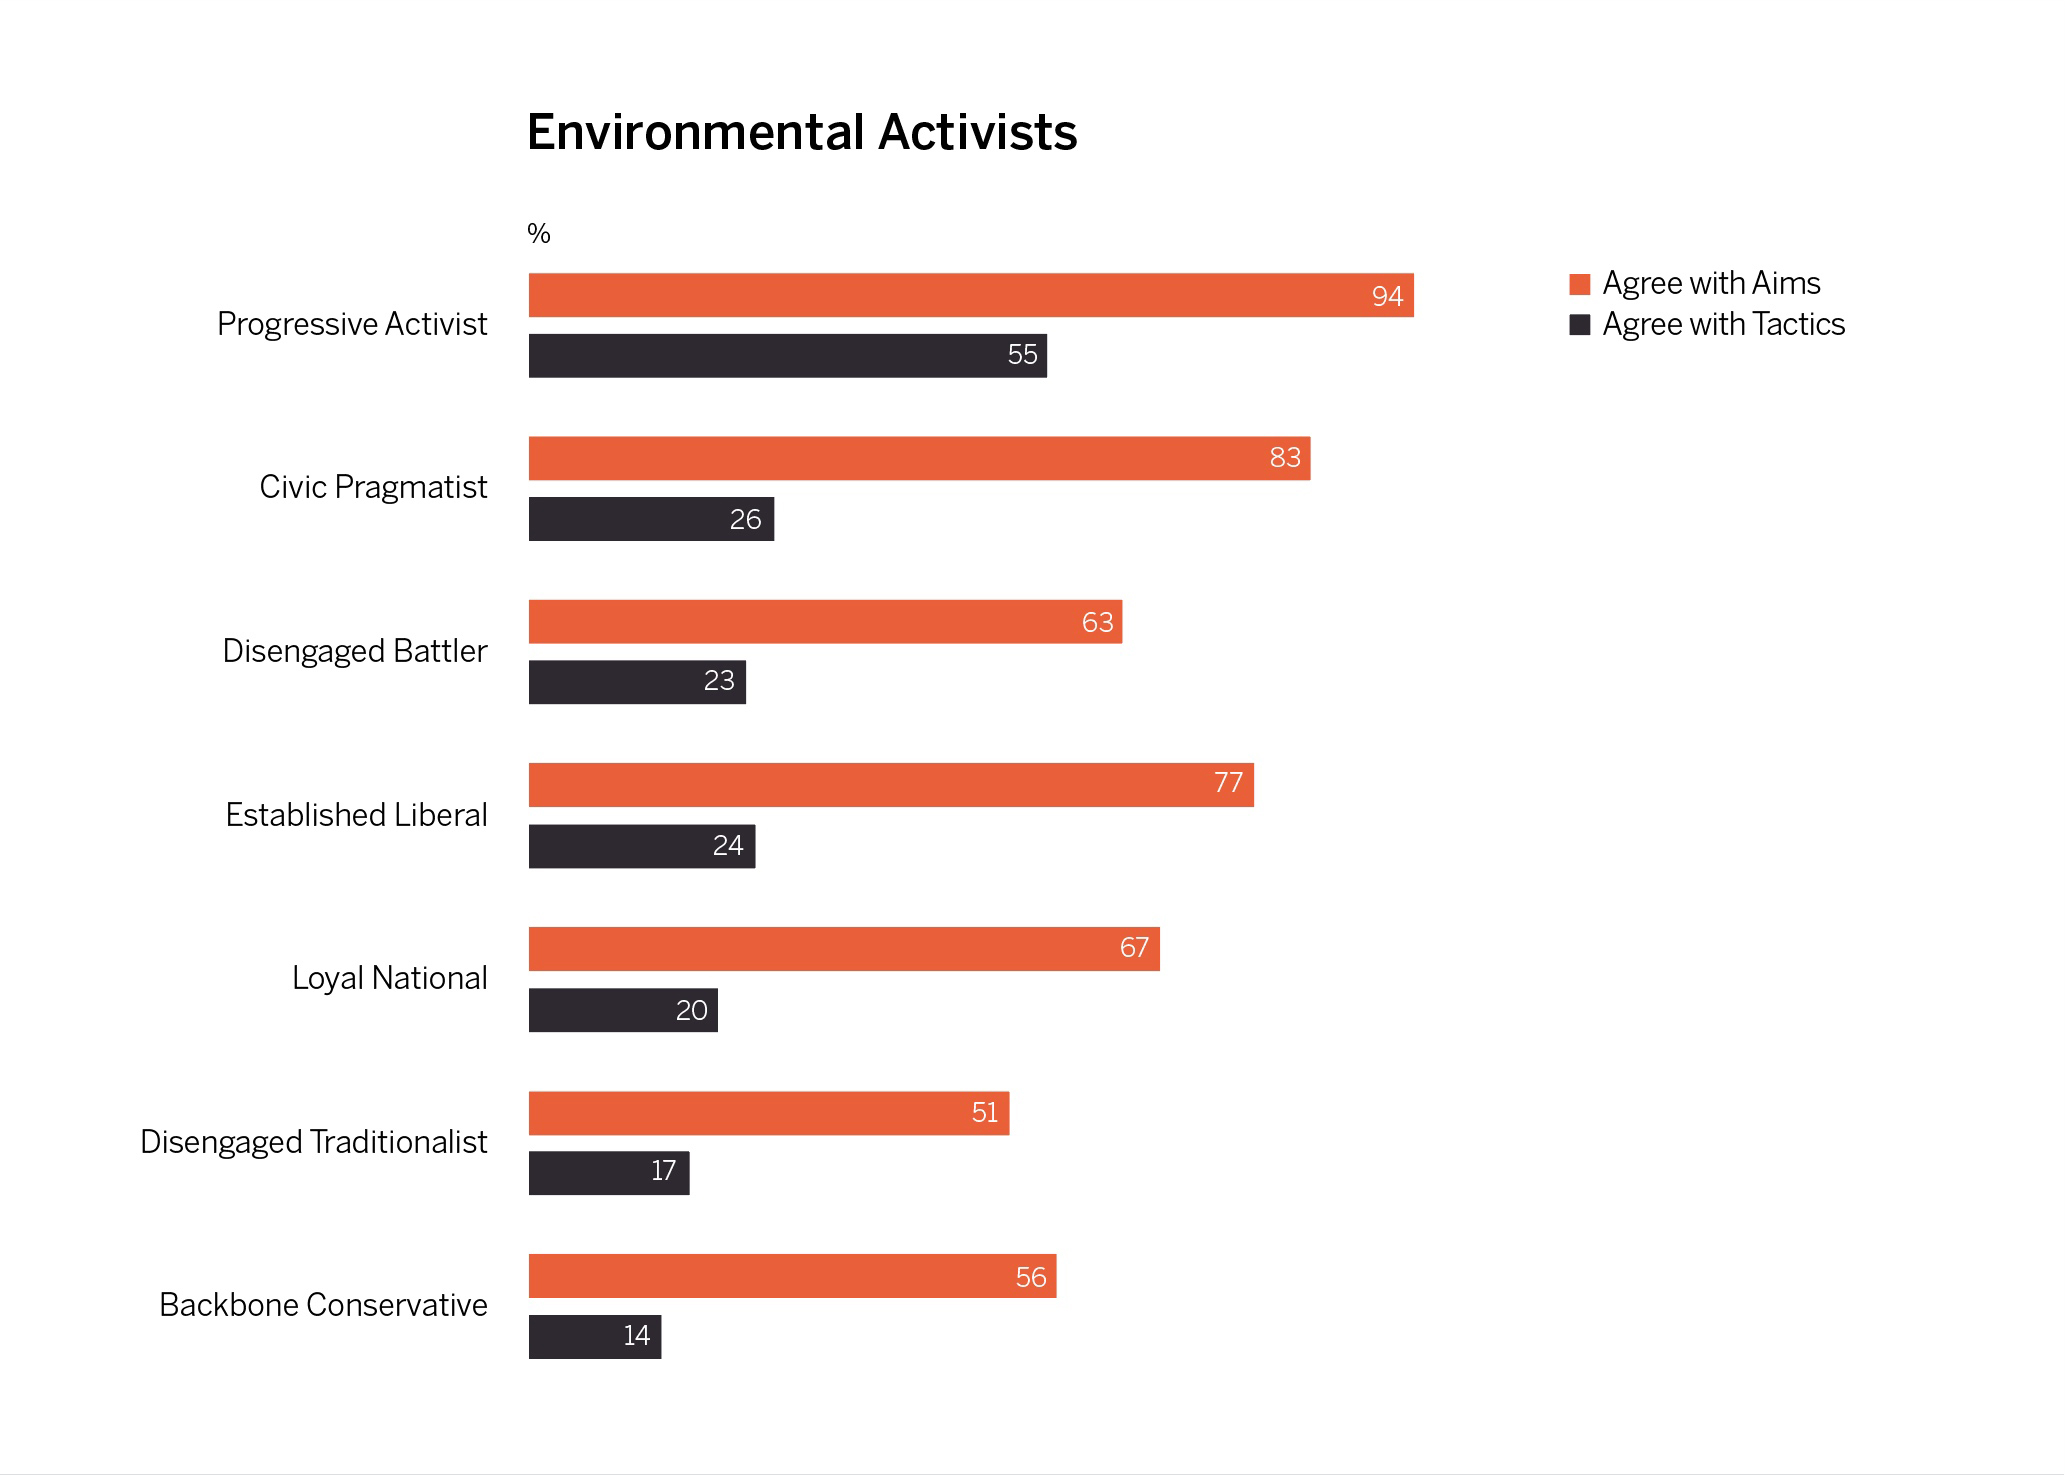 Percentage per segment who agree with the aims and tactics of environmental activists